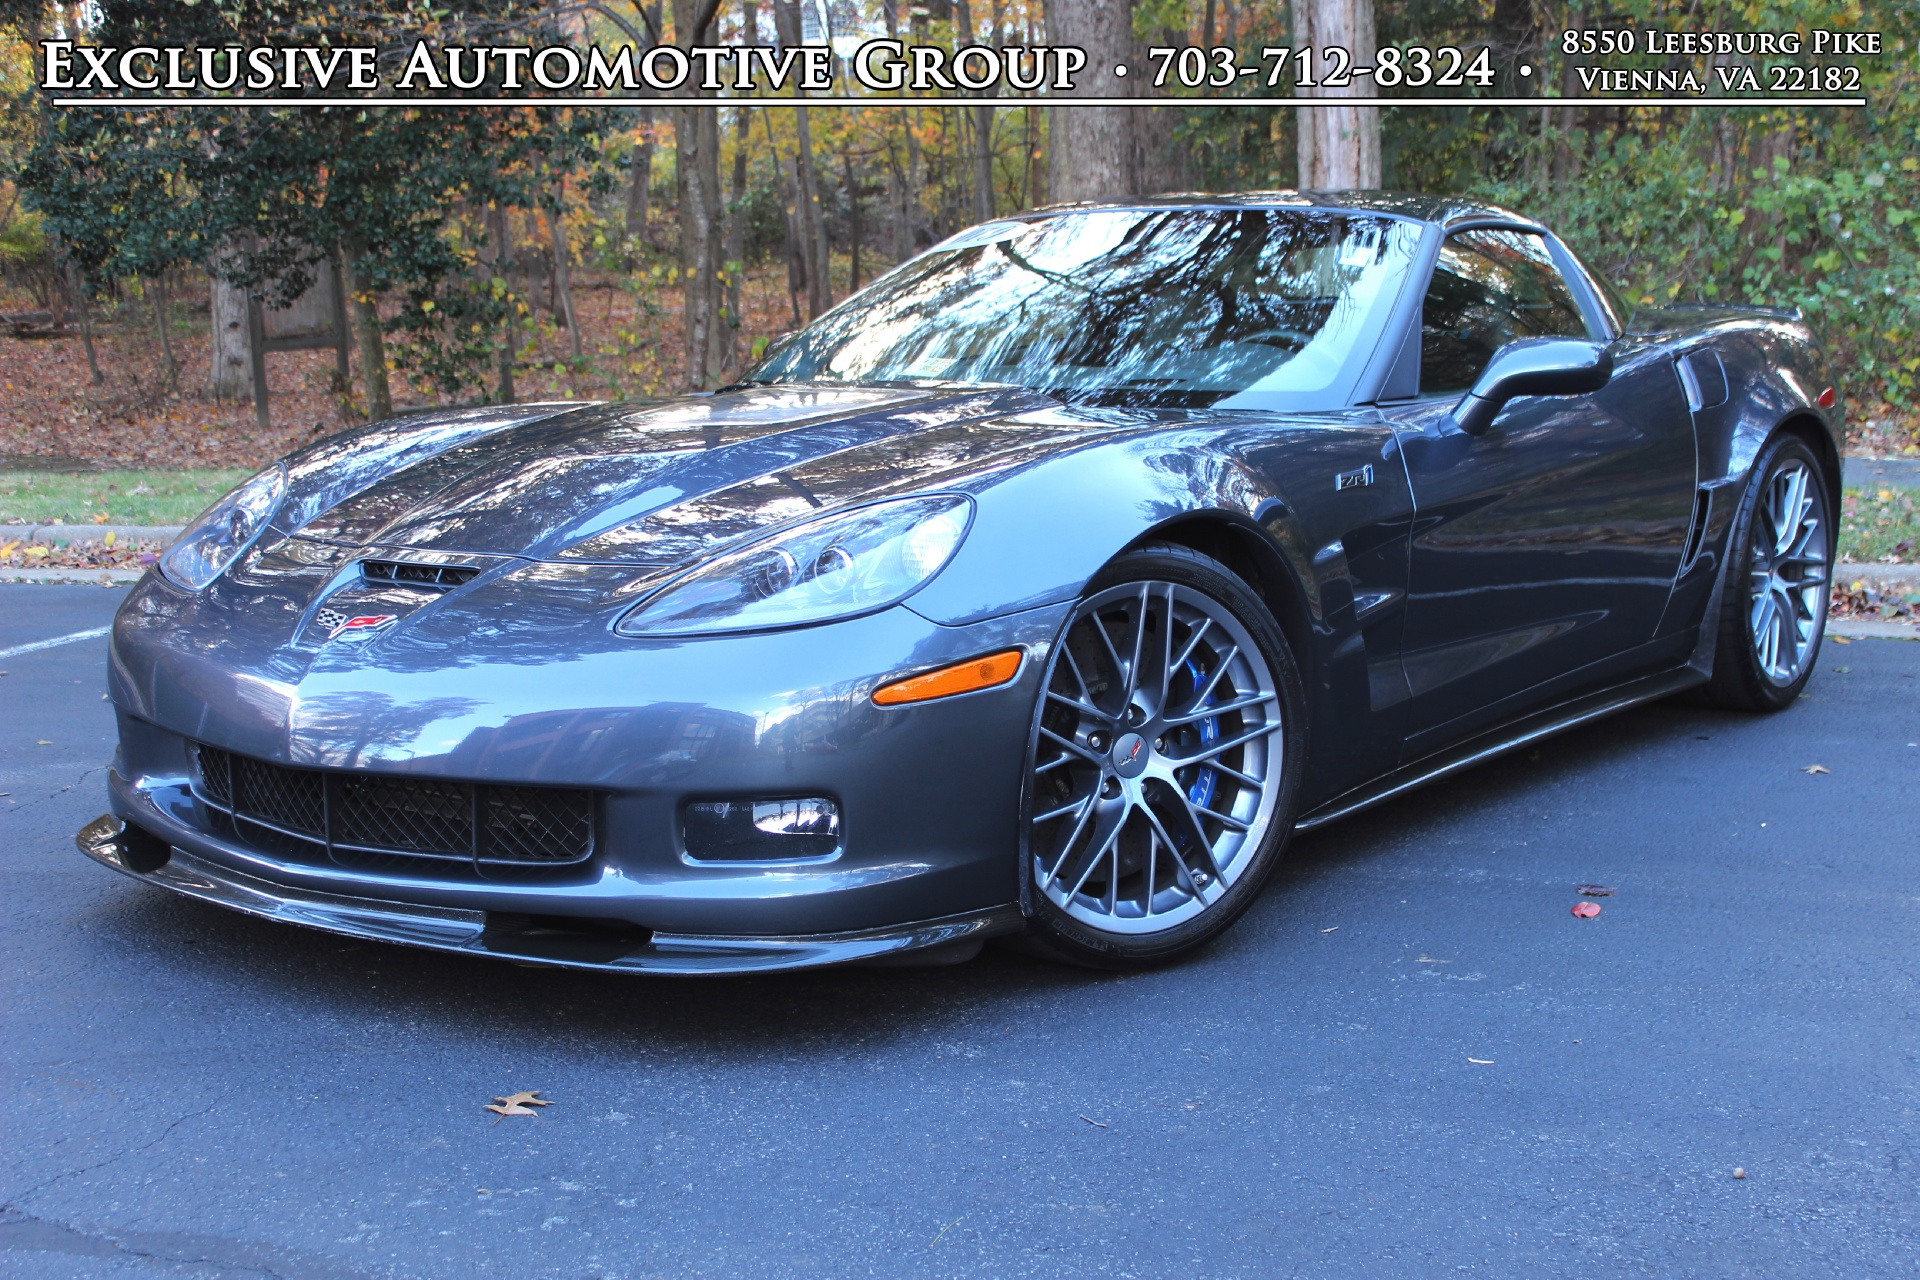 2010 Chevrolet Corvette Zr1 Stock P5800685 For Sale Near Vienna